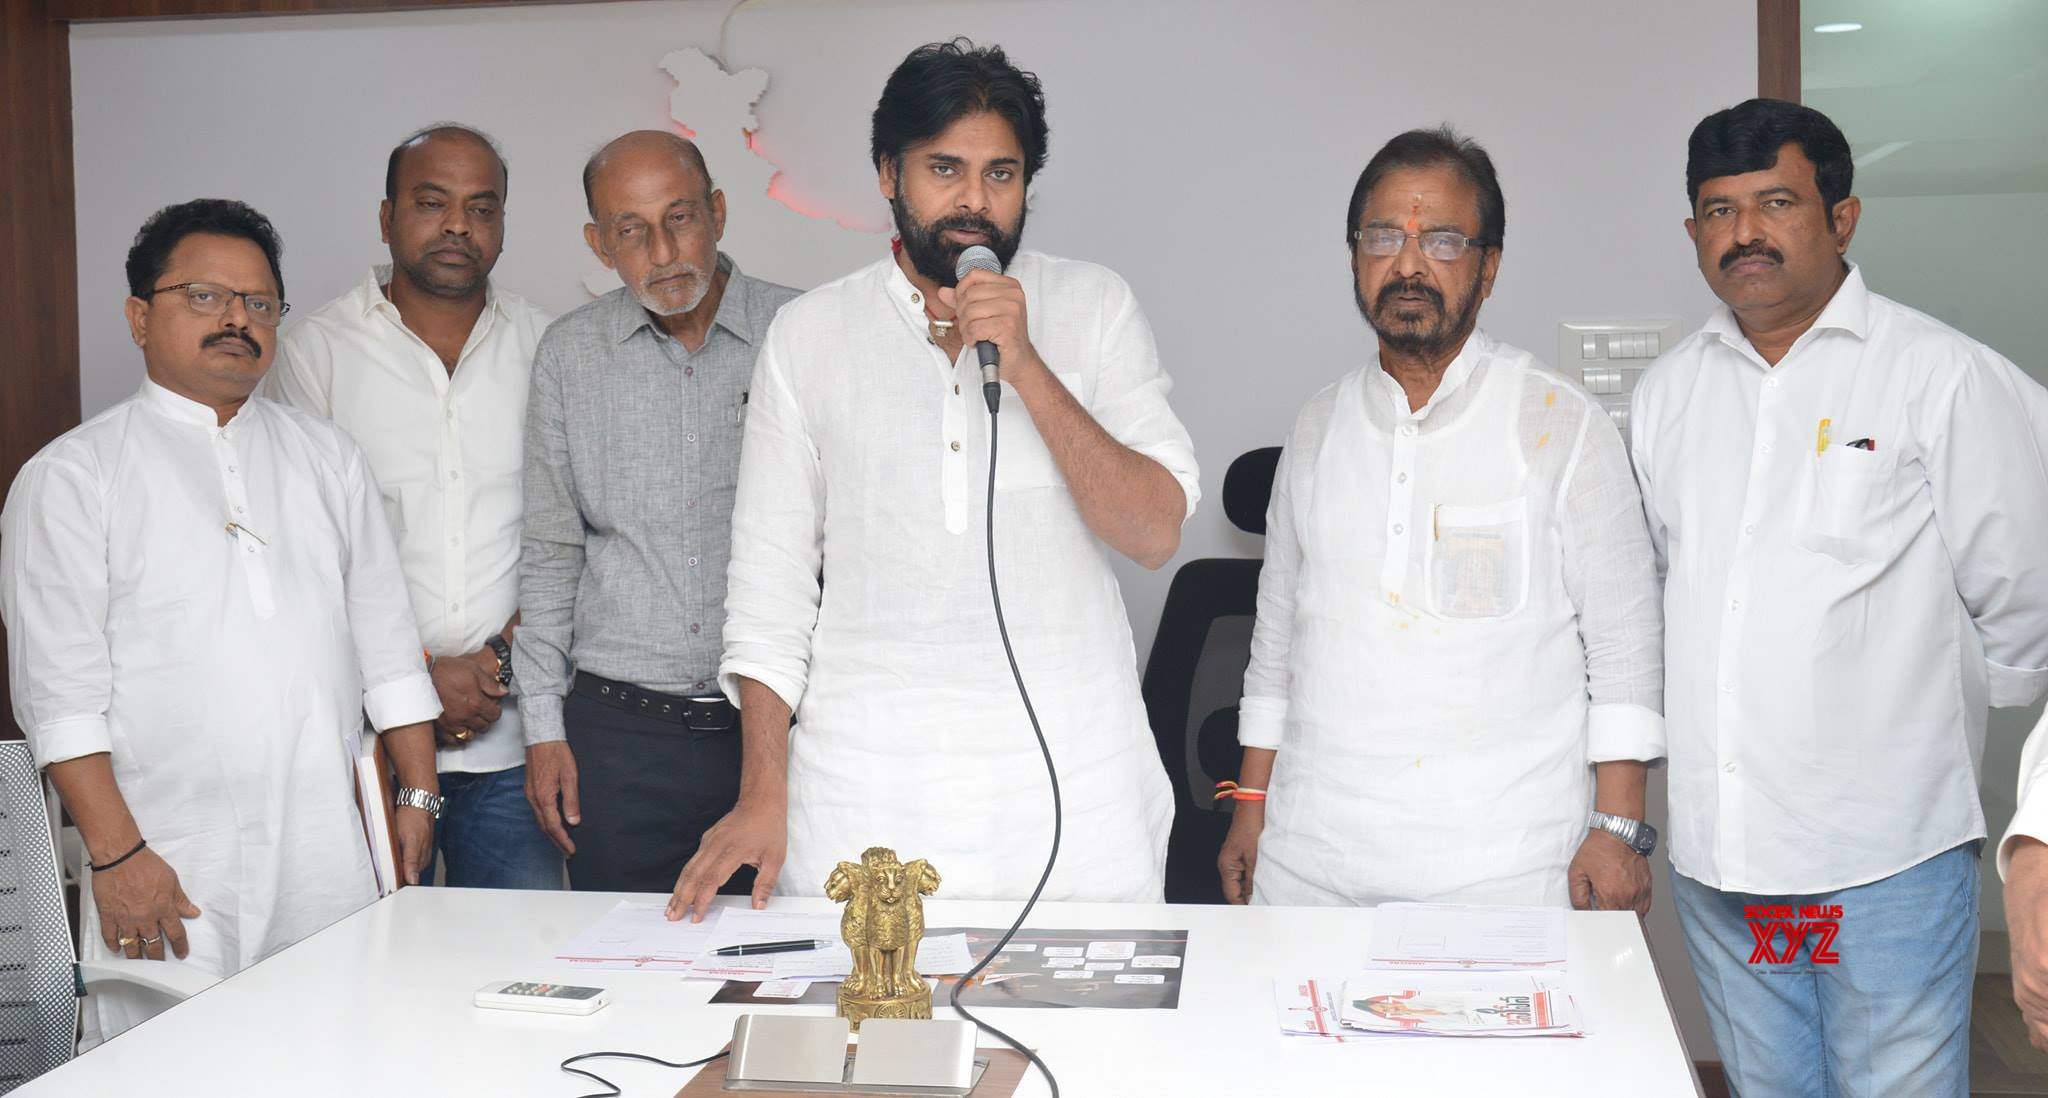 Janasena Chief Pawan Kalyan Meeting With Janasena Screening Committee - Gallery